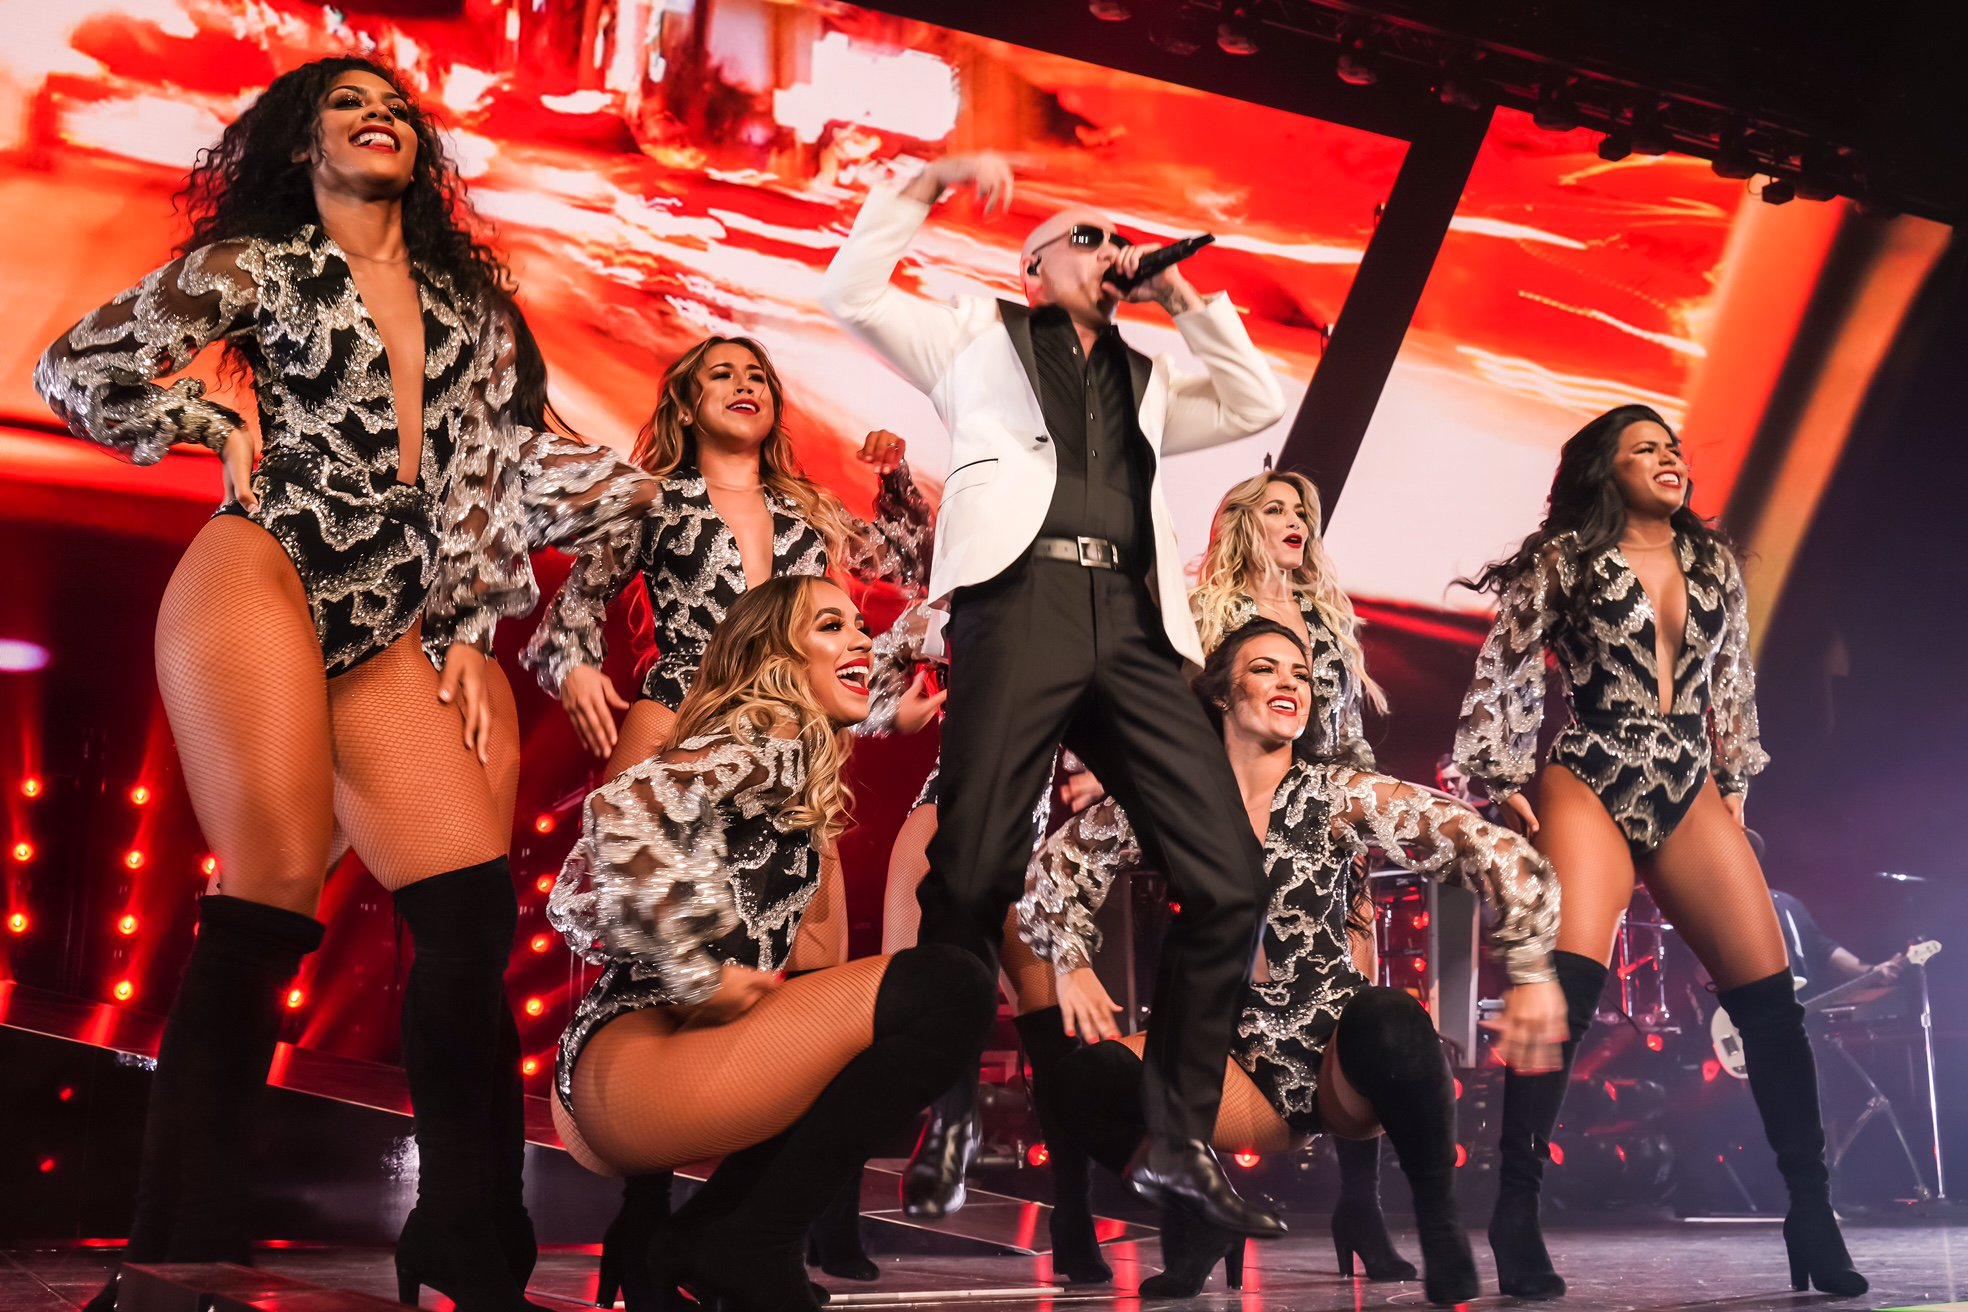 Everybody having a good time? #PitbullVegas https://t.co/ZzDyqB9ia3 https://t.co/WaVqkxpVCi